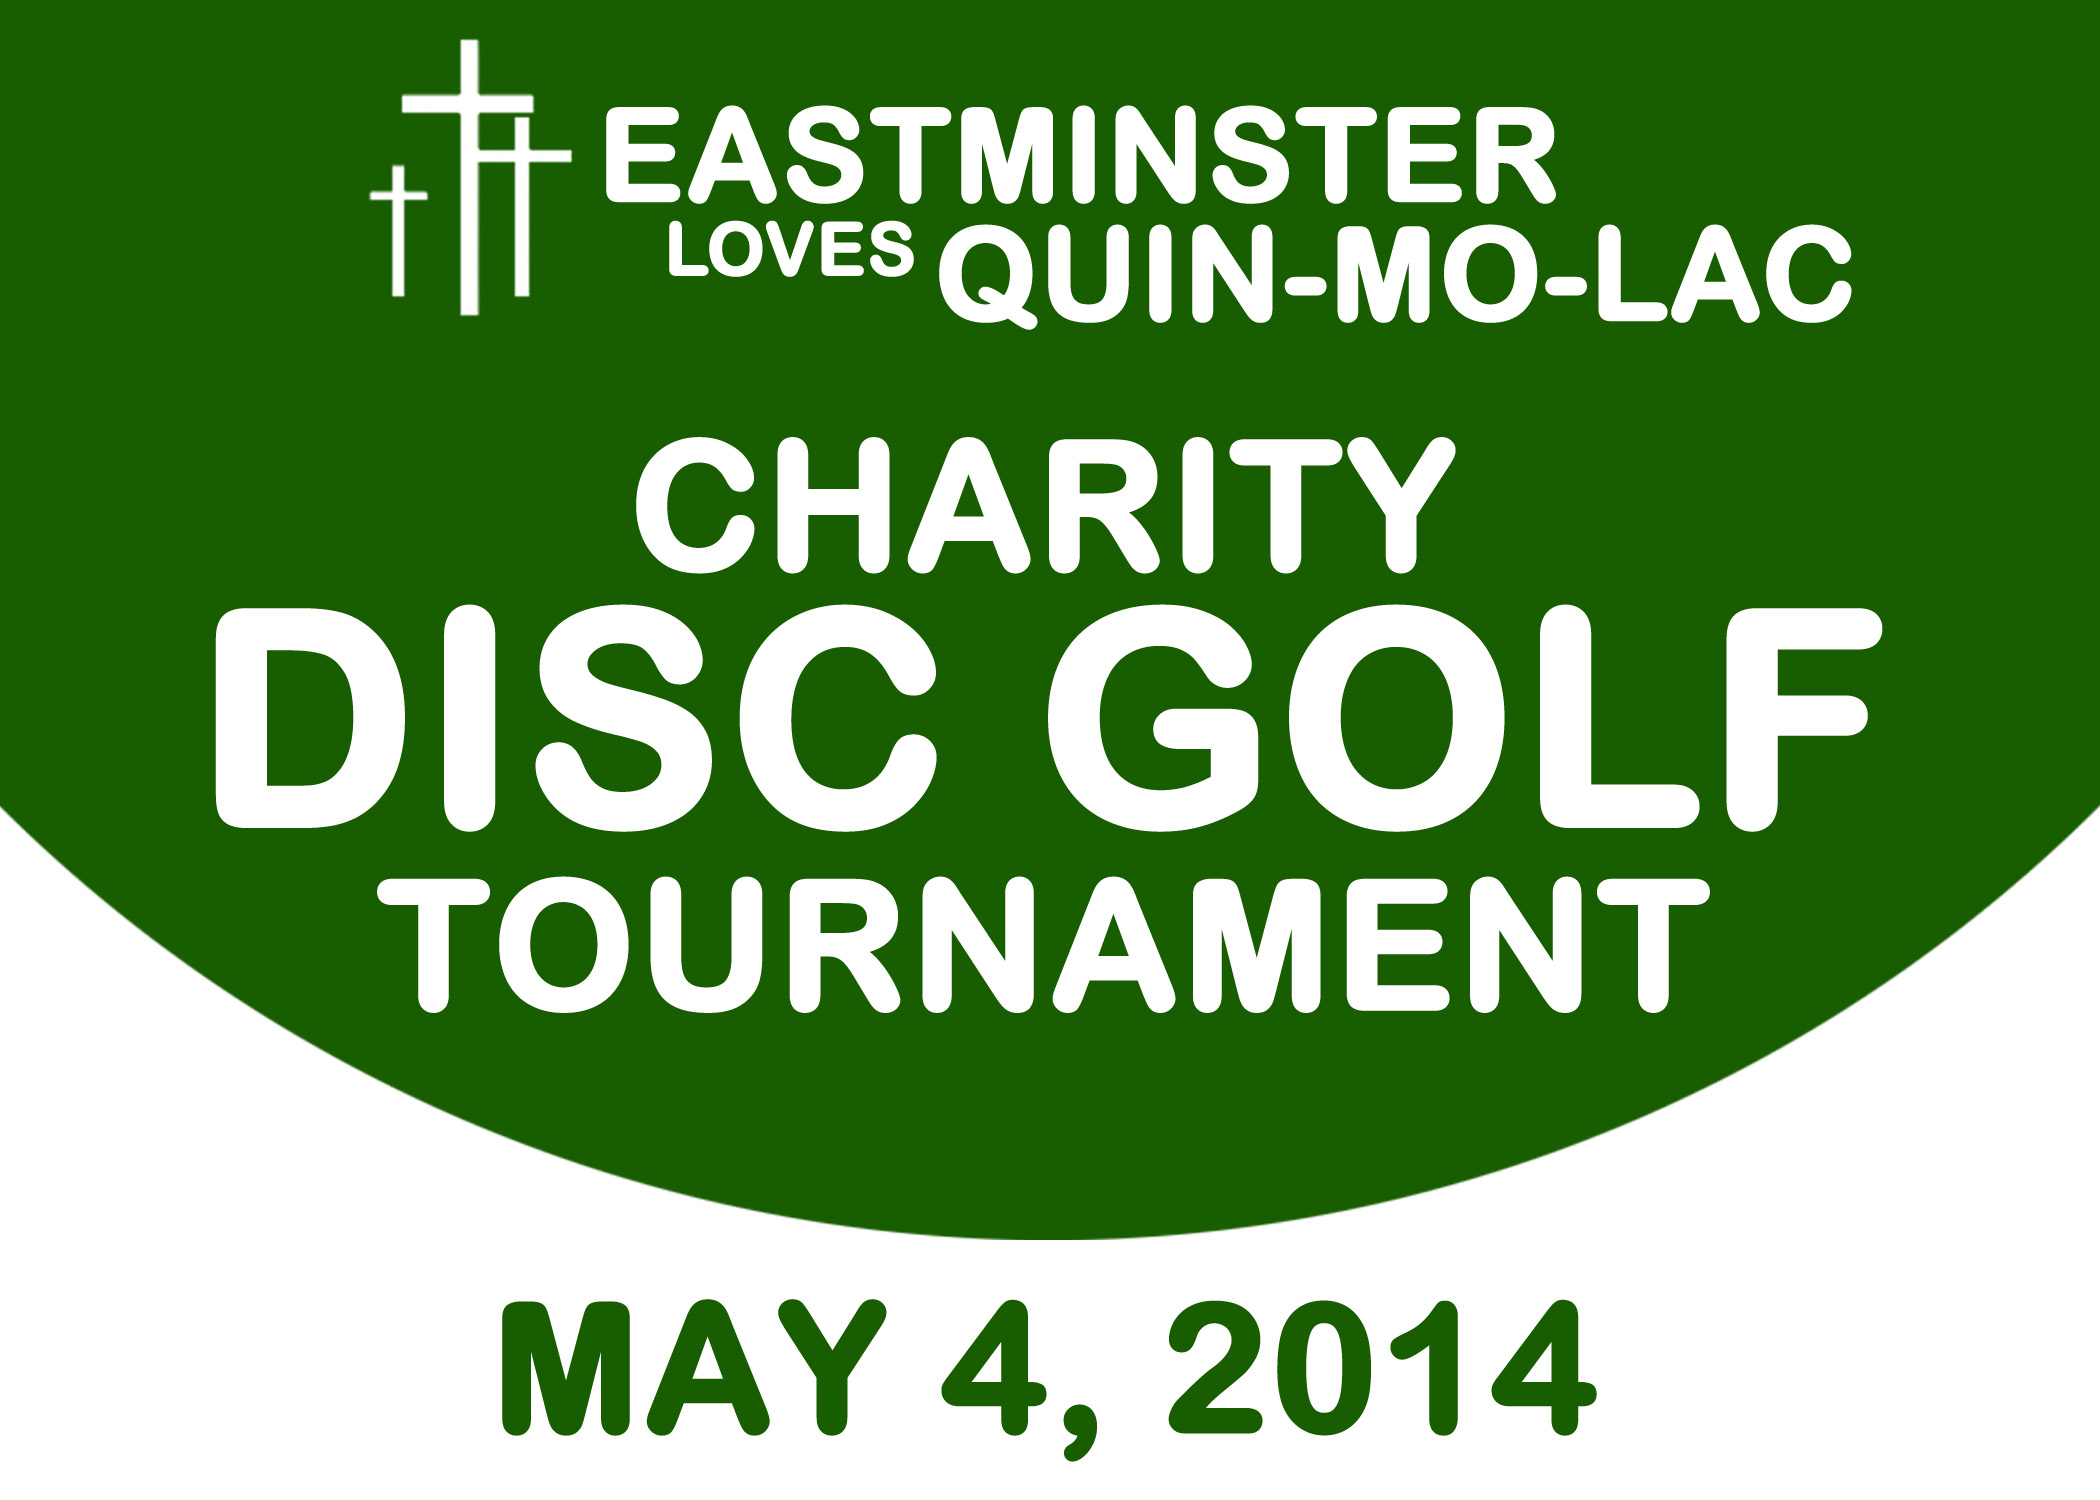 CLICK HERE FOR MORE ABOUT THE CHARITY DISC GOLF TOURNAMENT